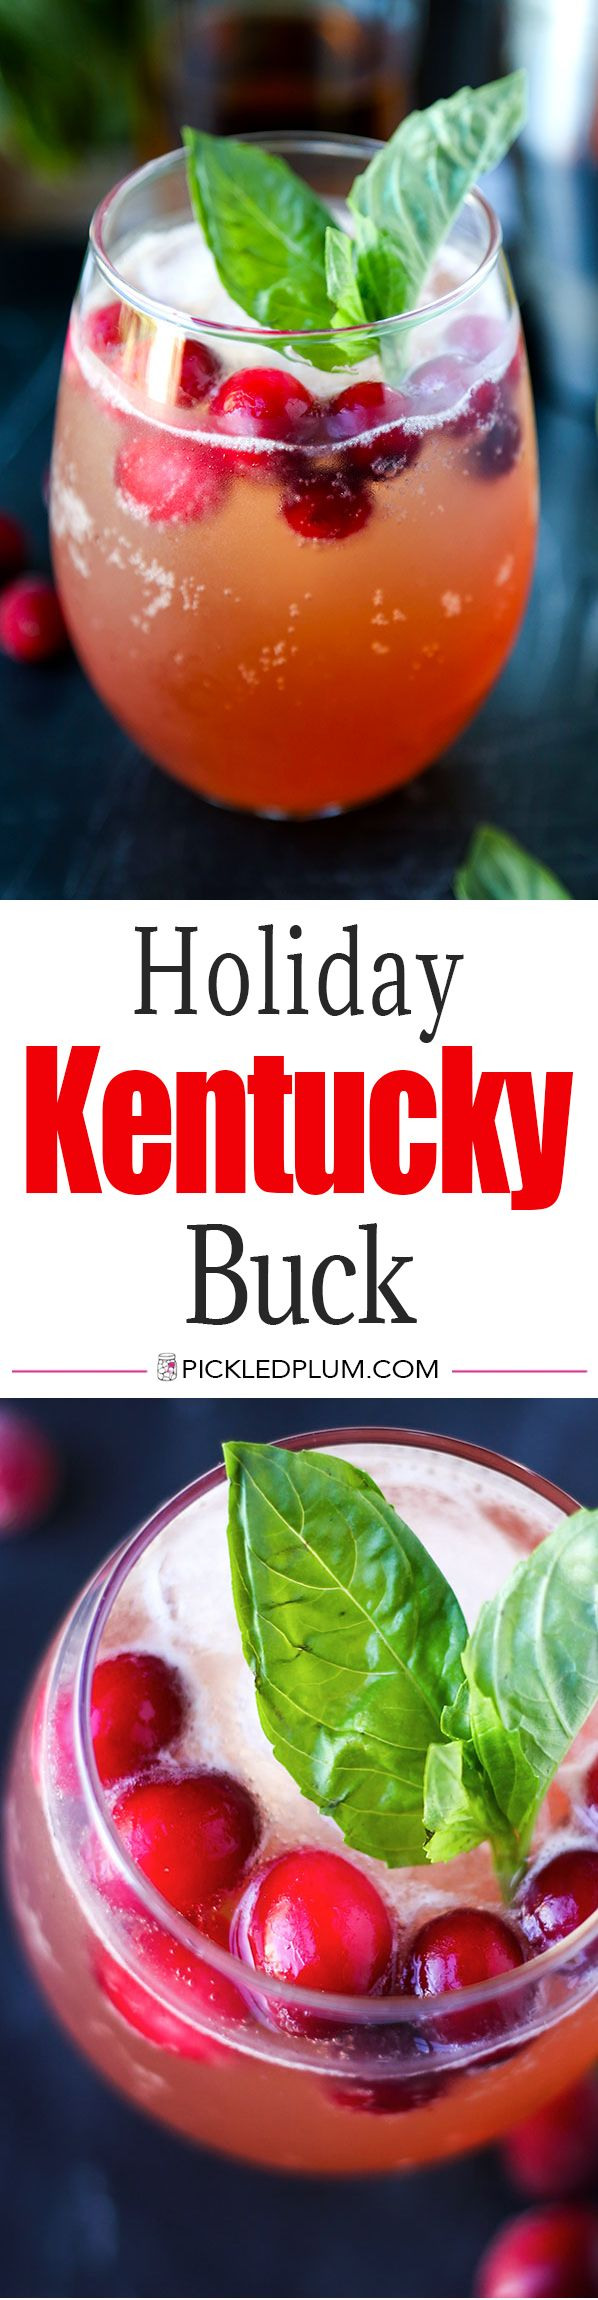 Holiday Kentucky Buck - Get into the holiday spirit with this fresh Holiday Kentucky Buck Recipe. Boozy holiday fortifications never looked more festive or tasted quite so bright! Recipe, drinks, cocktail, whiskey, Christmas, cranberry | pickledplum.com